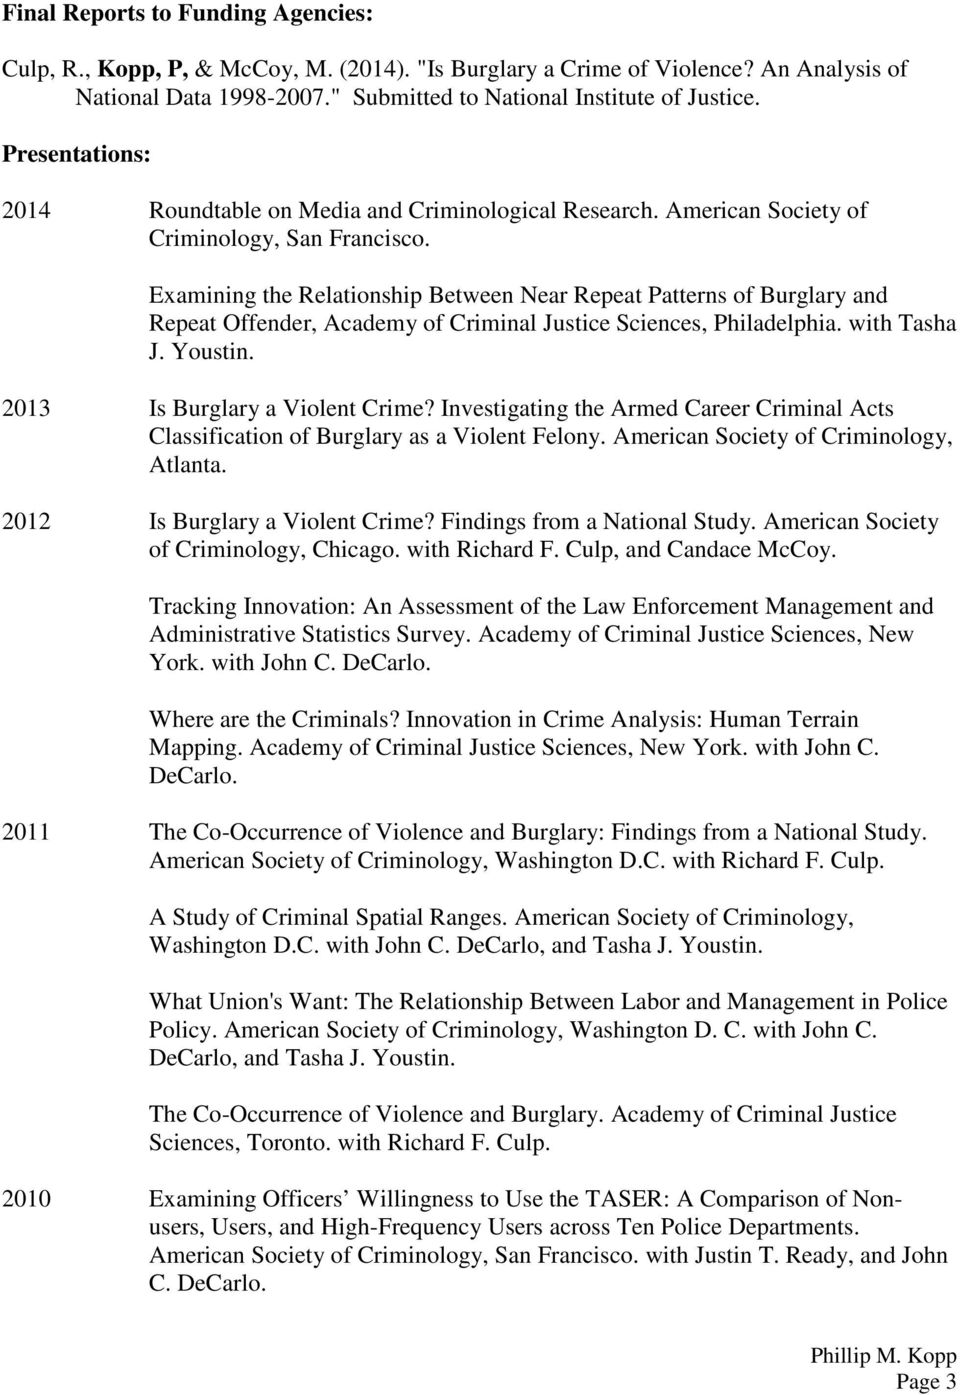 Examining the Relationship Between Near Repeat Patterns of Burglary and Repeat Offender, Academy of Sciences, Philadelphia. with Tasha J. Youstin. 2013 Is Burglary a Violent Crime?